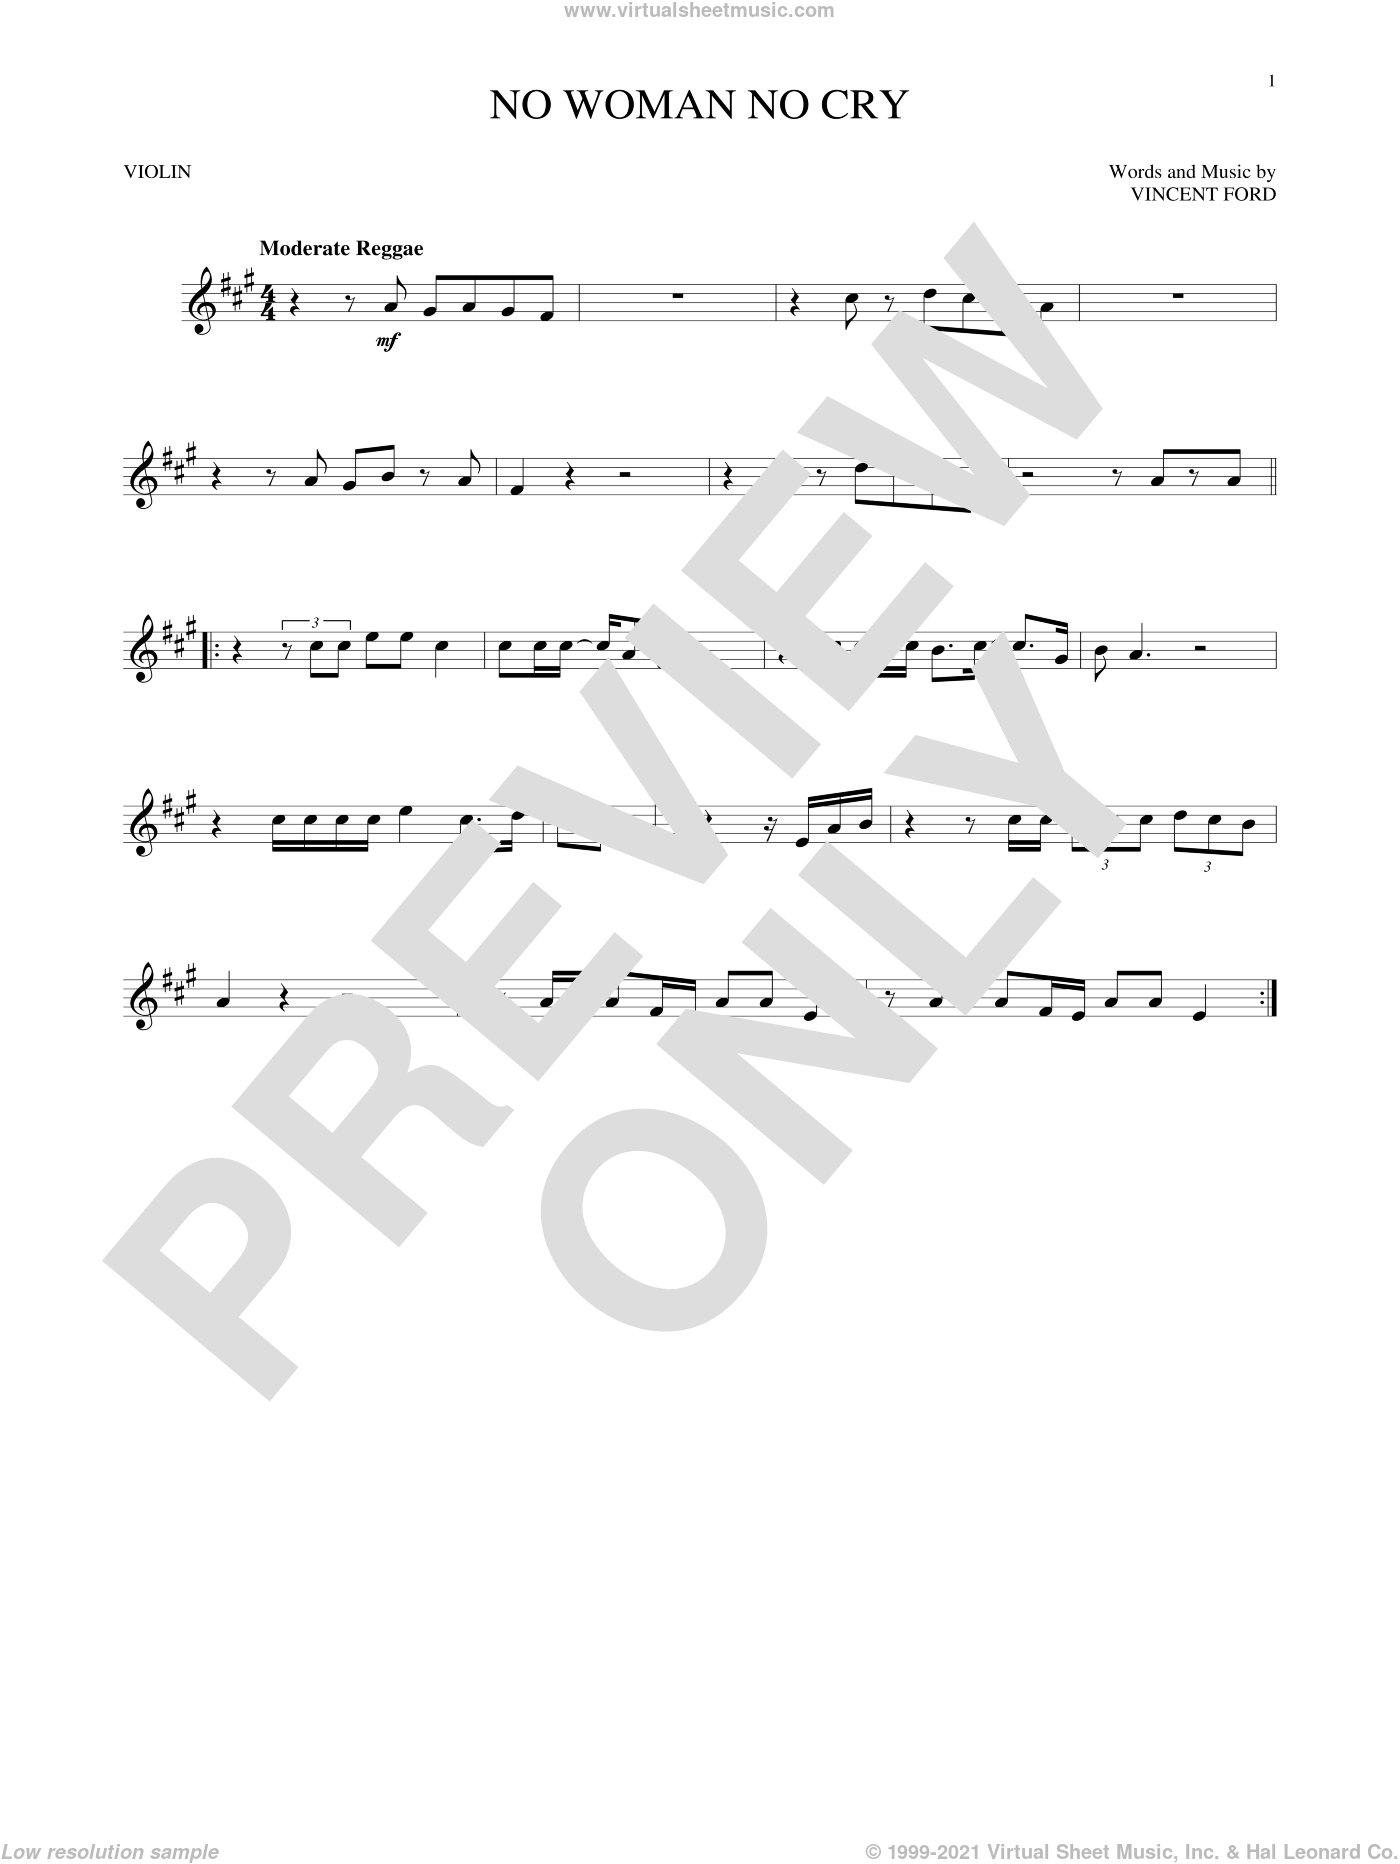 No Woman No Cry sheet music for violin solo by Bob Marley and Vincent Ford, intermediate skill level